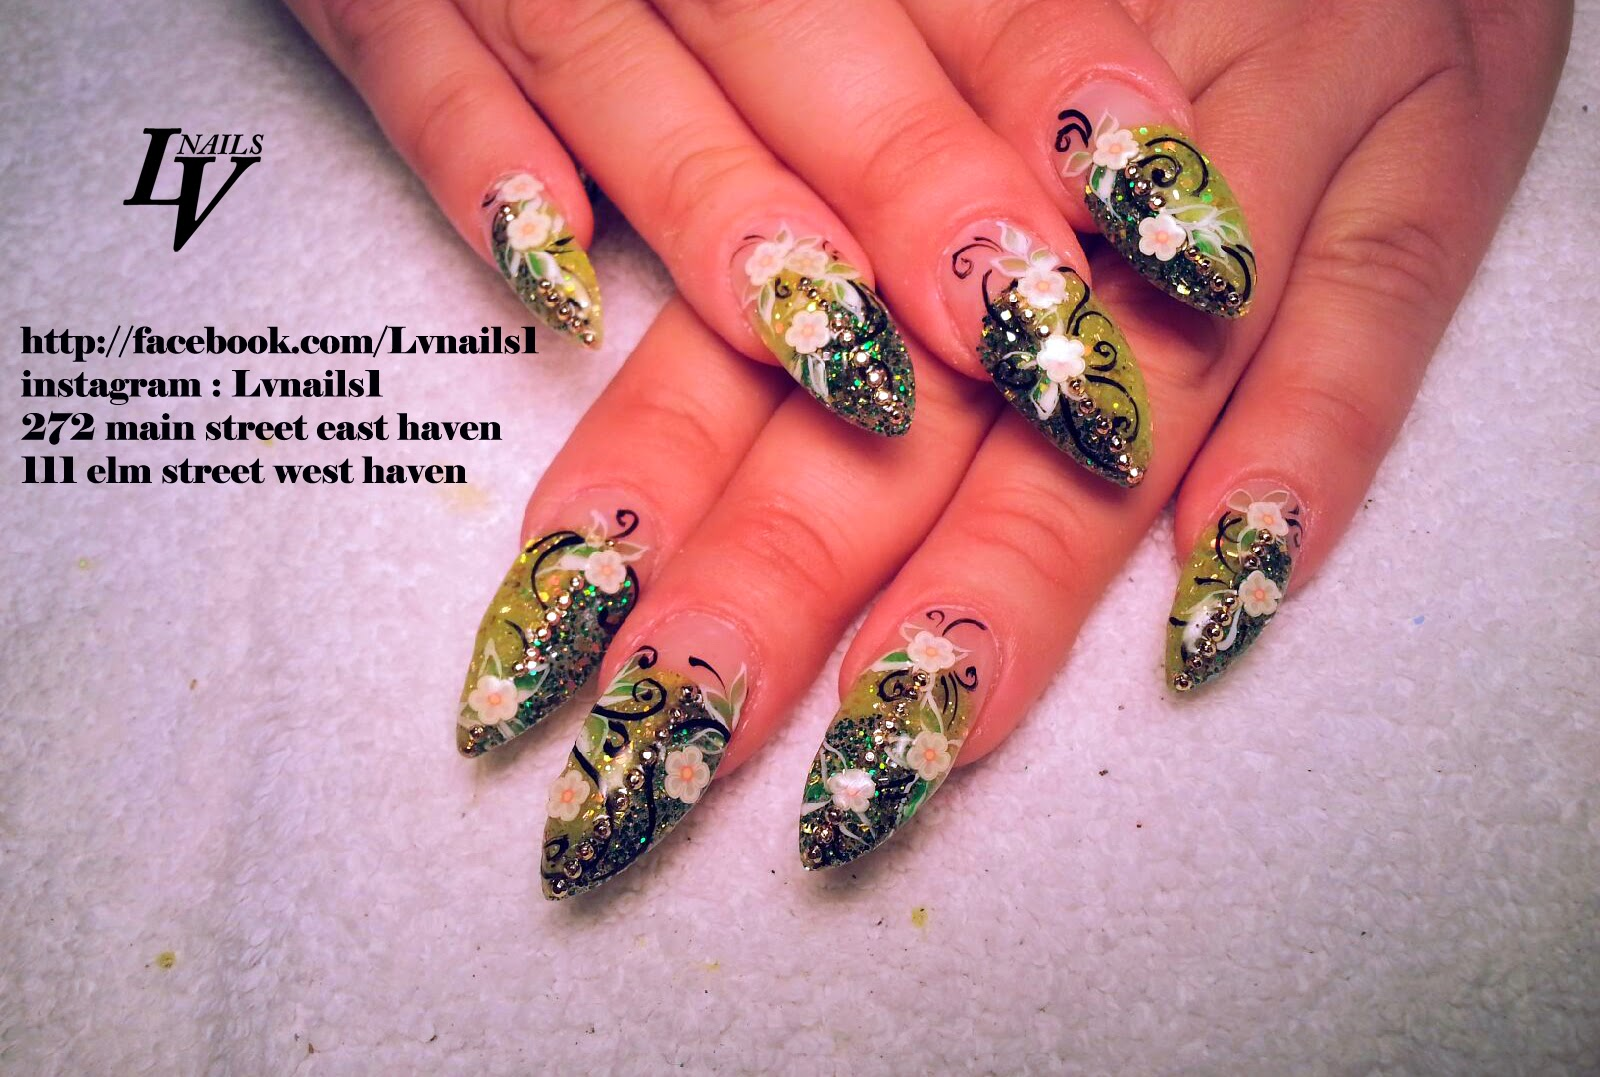 LV Nails, 111 Elm Street, West Haven, Reviews and Appointments ...